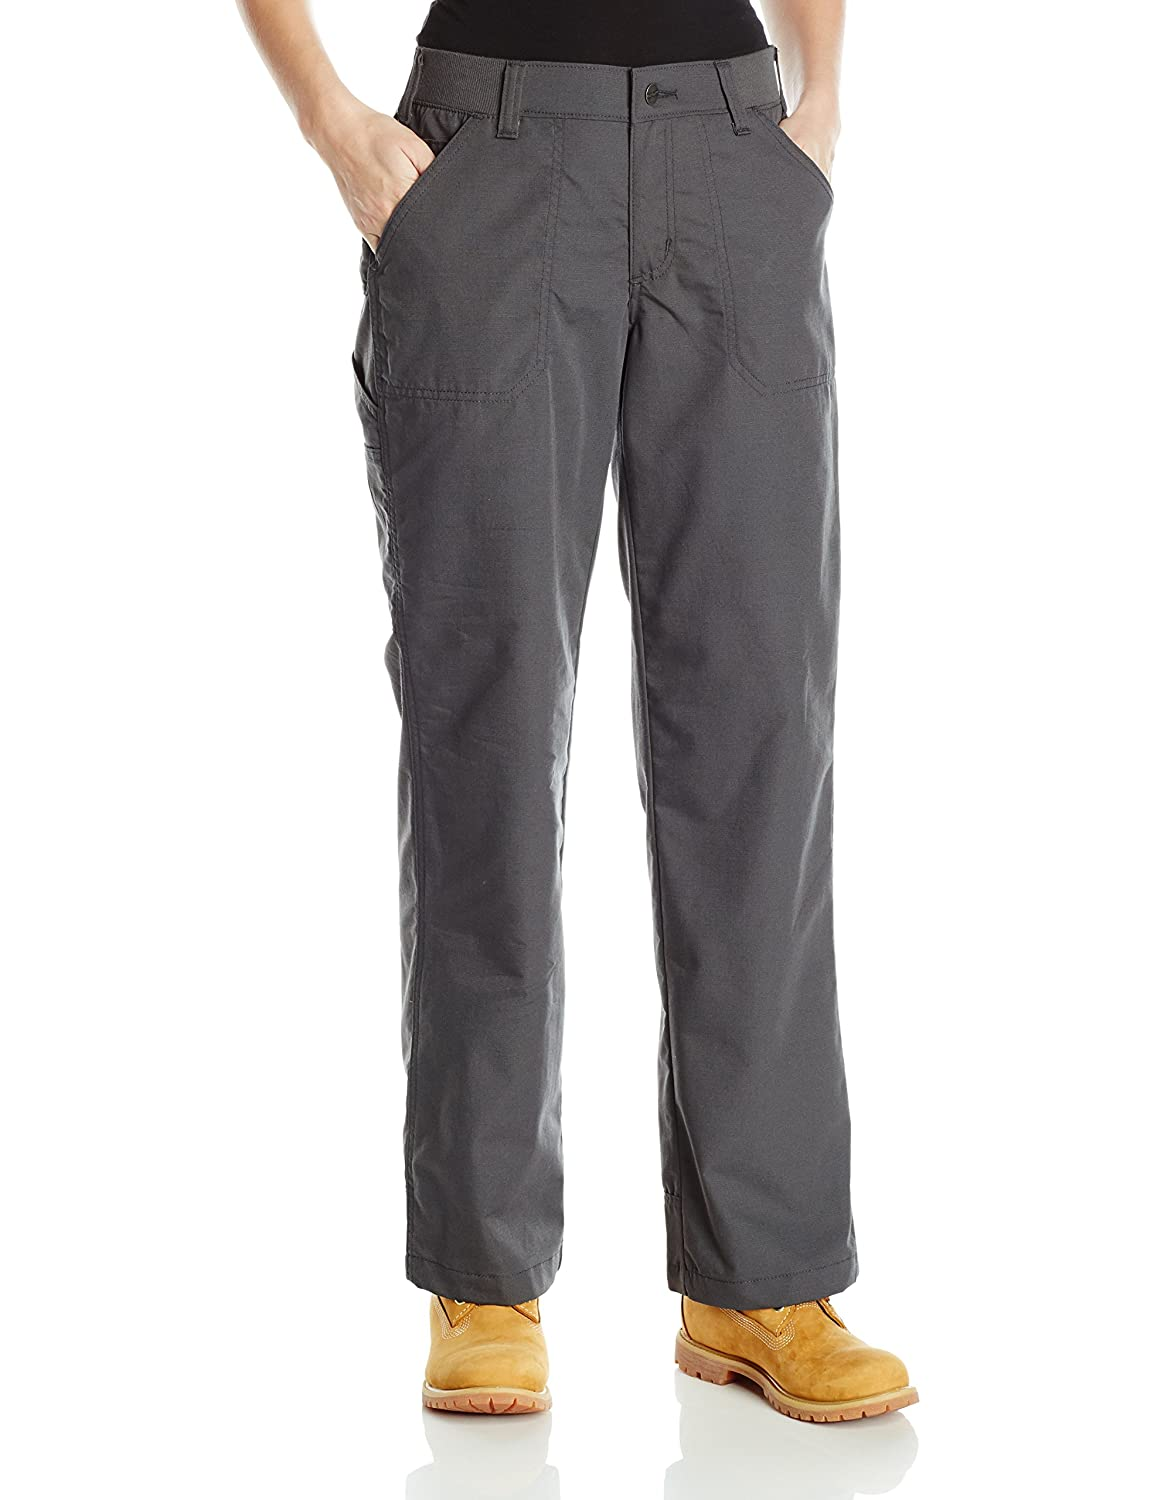 Carhartt Women's Force Extremes Pants 102436